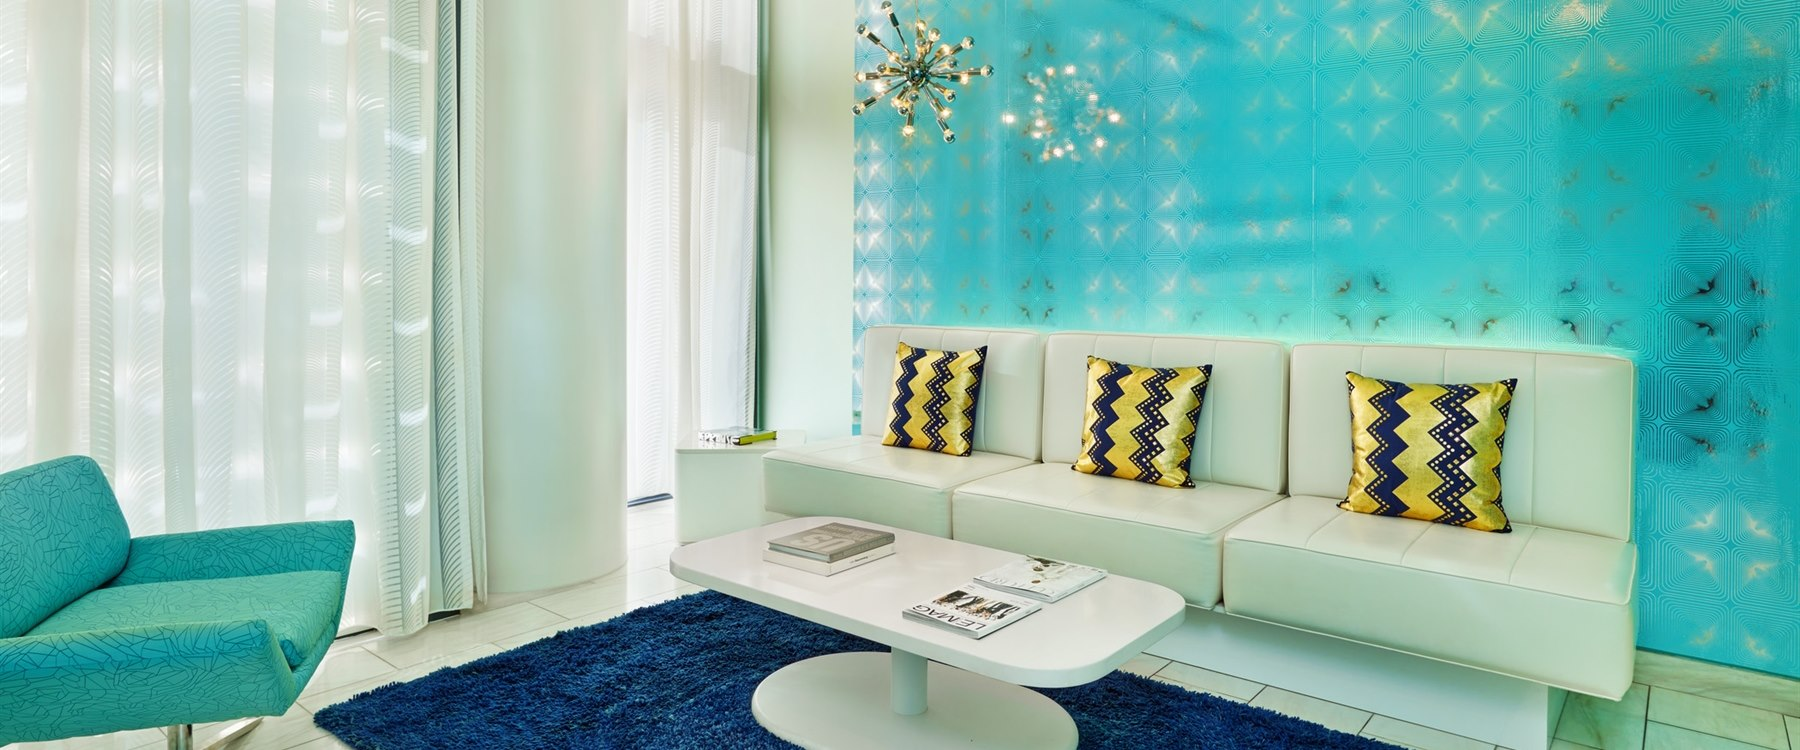 Bliss relaxation room at W South Beach, Miami